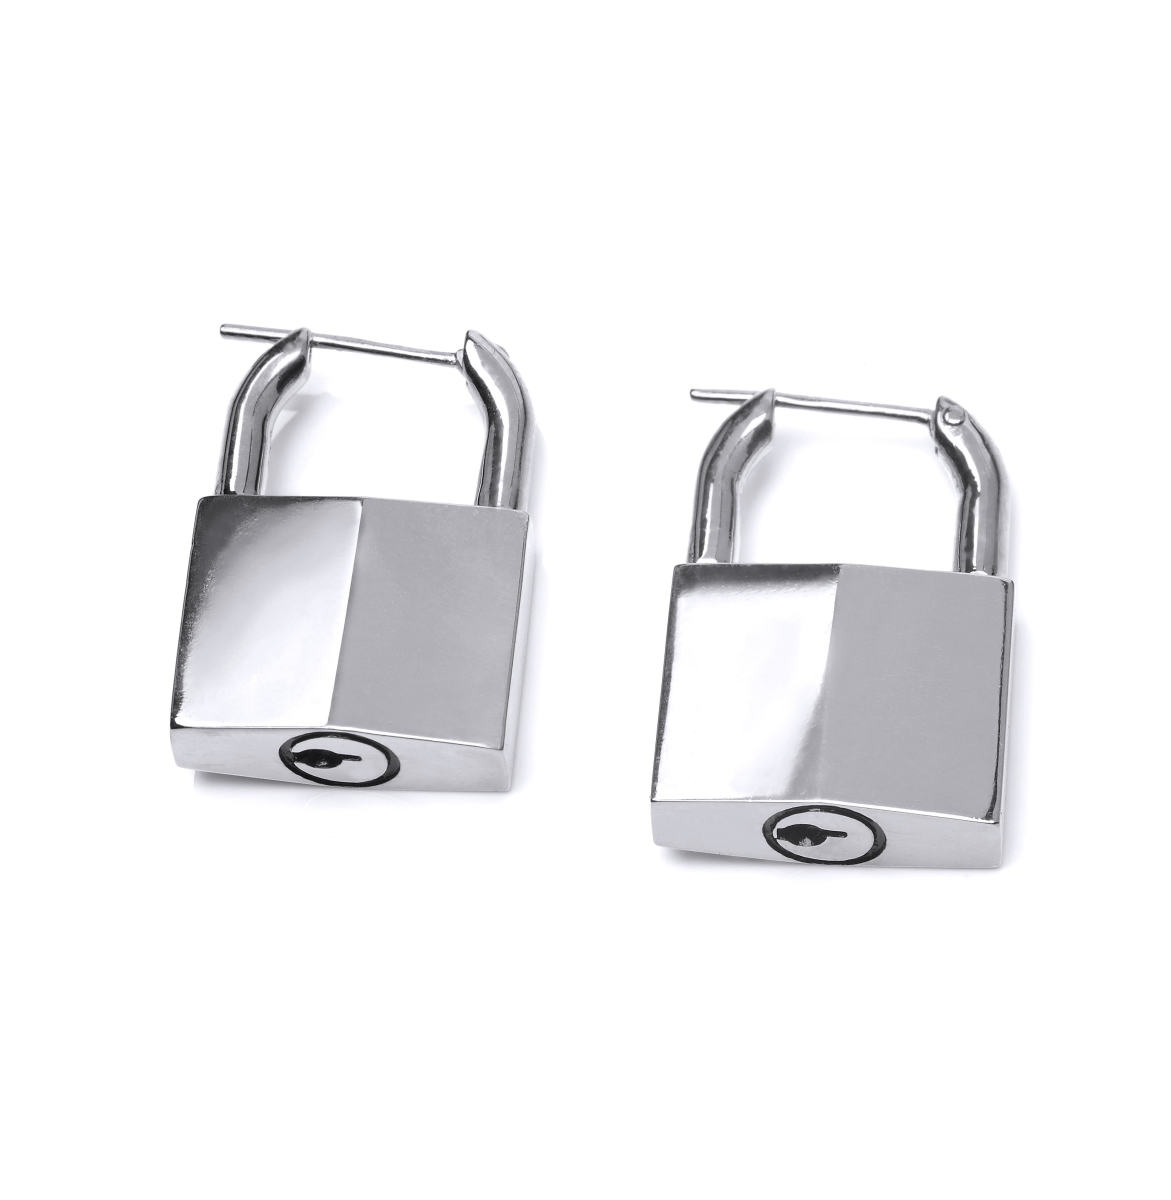 Lauren Klassen padlock earring, $300, available at Farfetch.